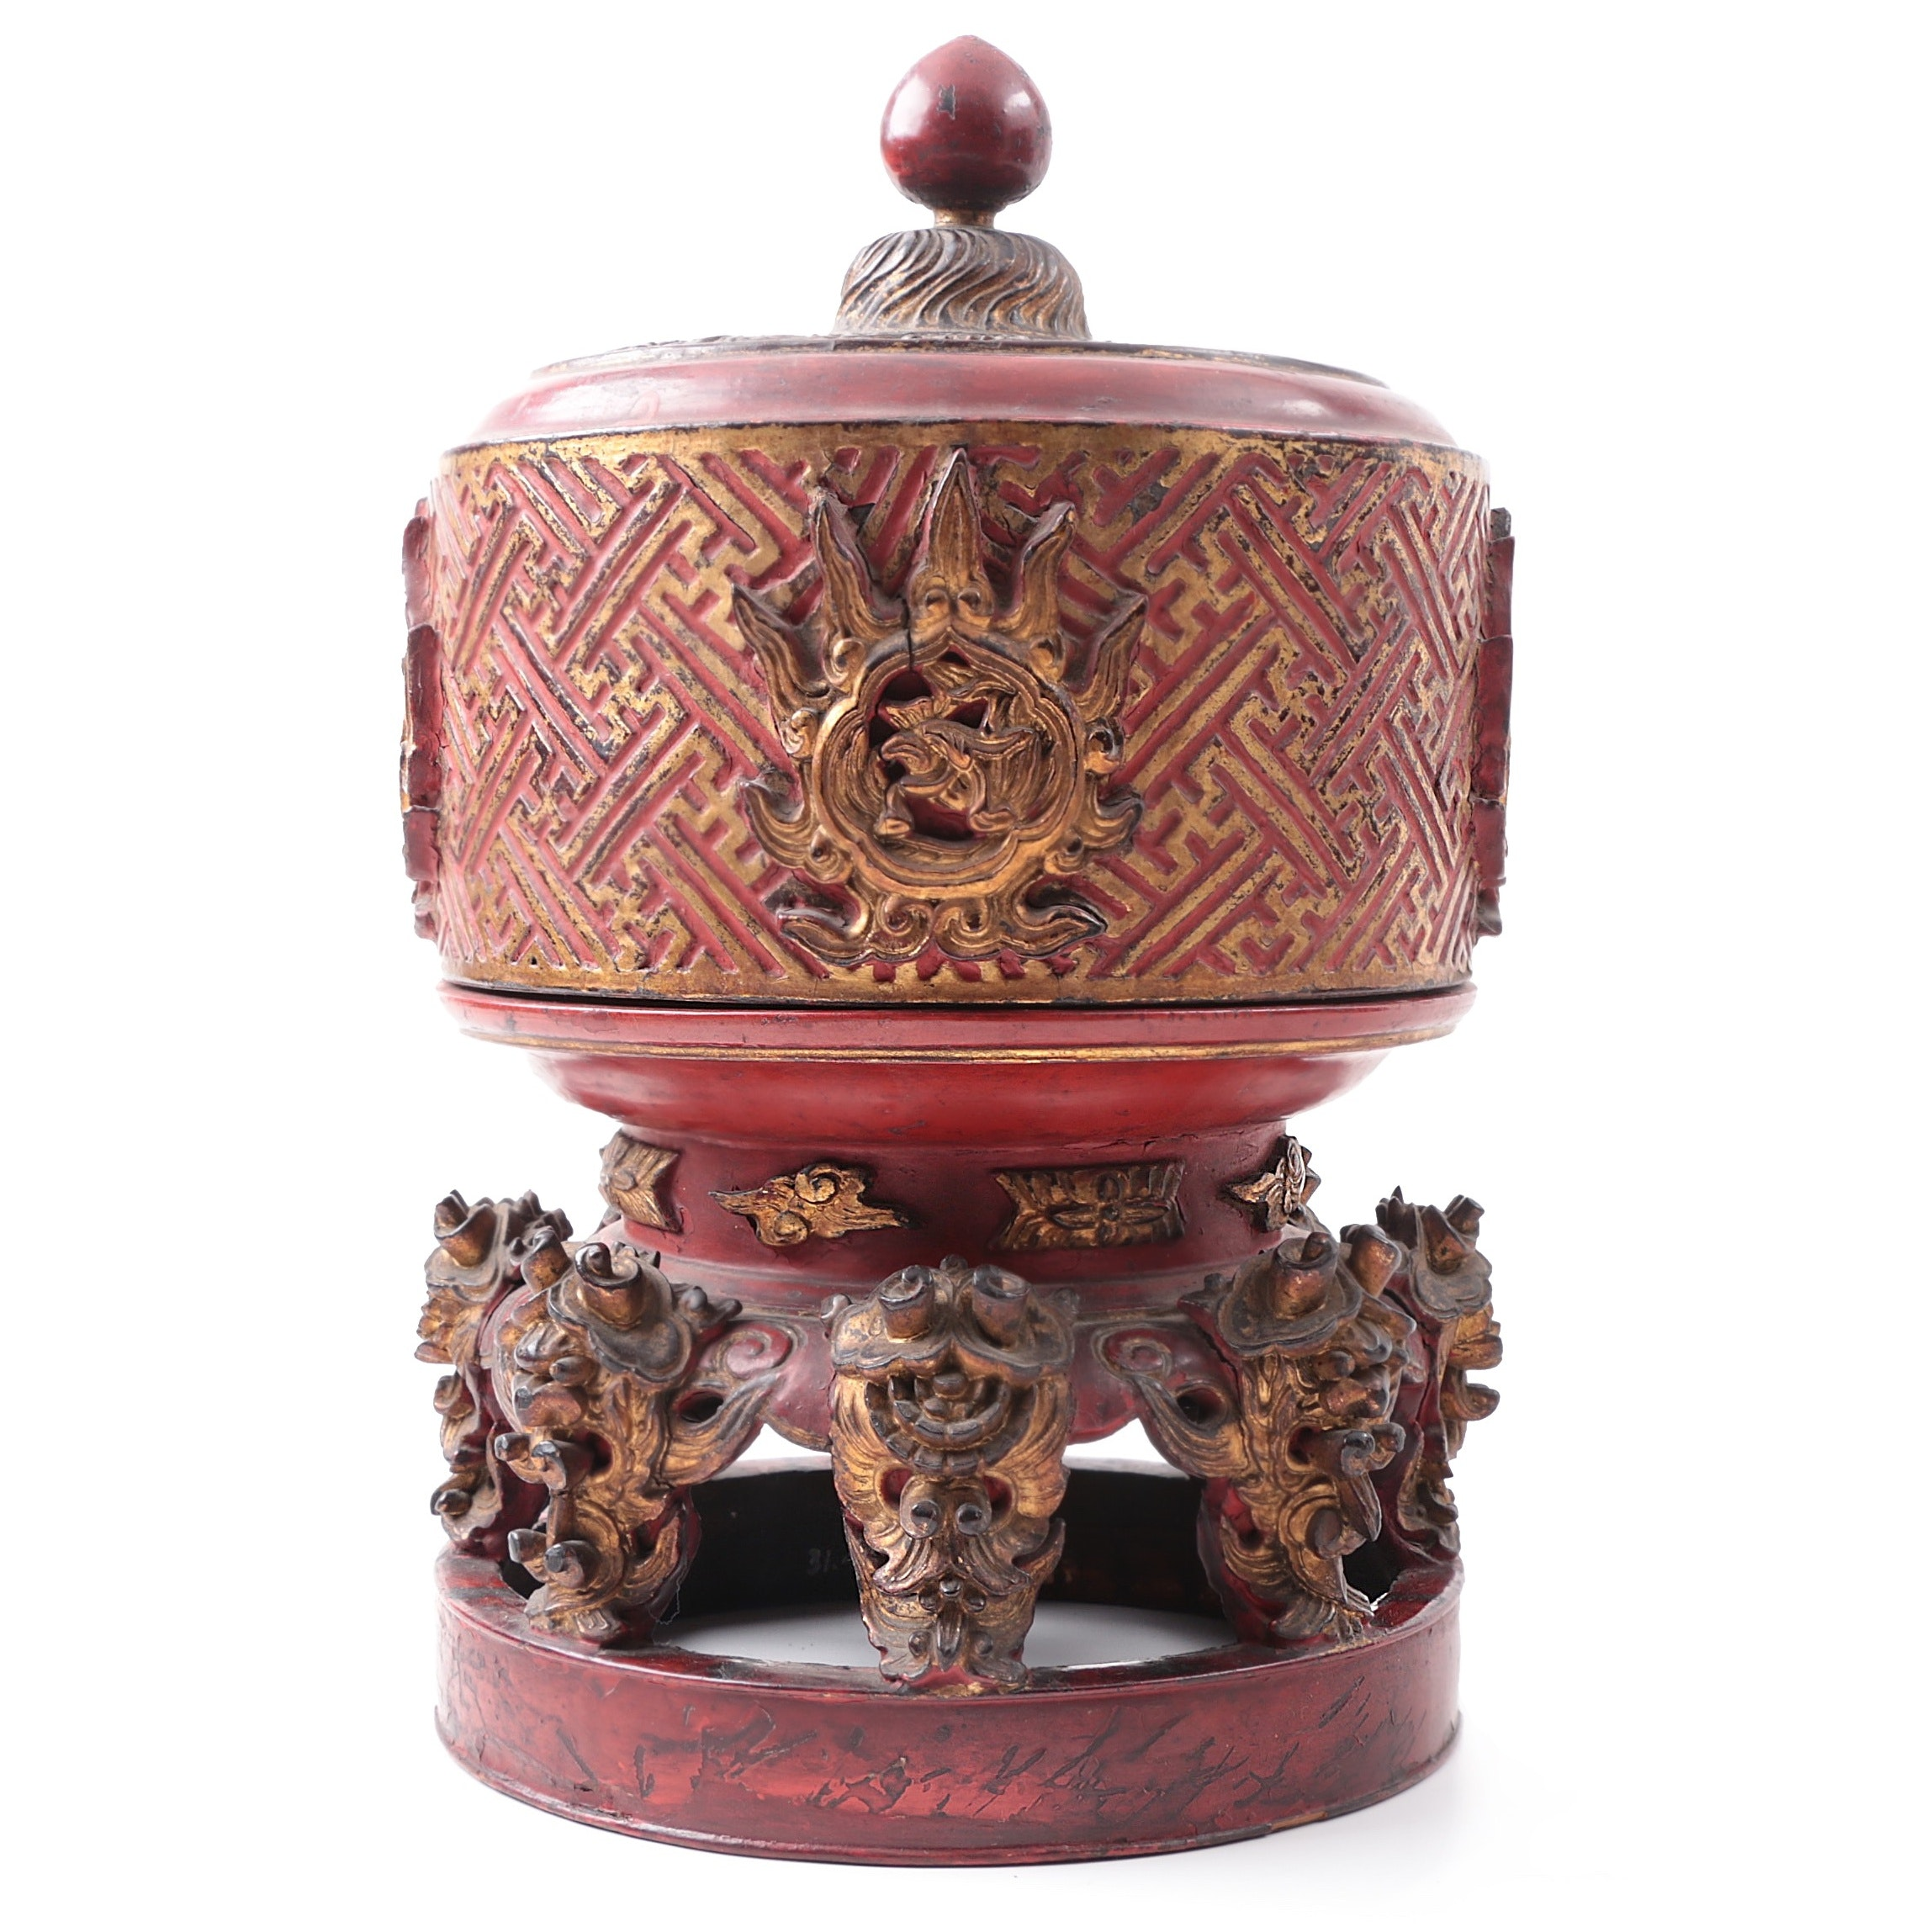 Circa 1900 Burmese Lacquered and Gilt Ceremonial Betel Box on Stand